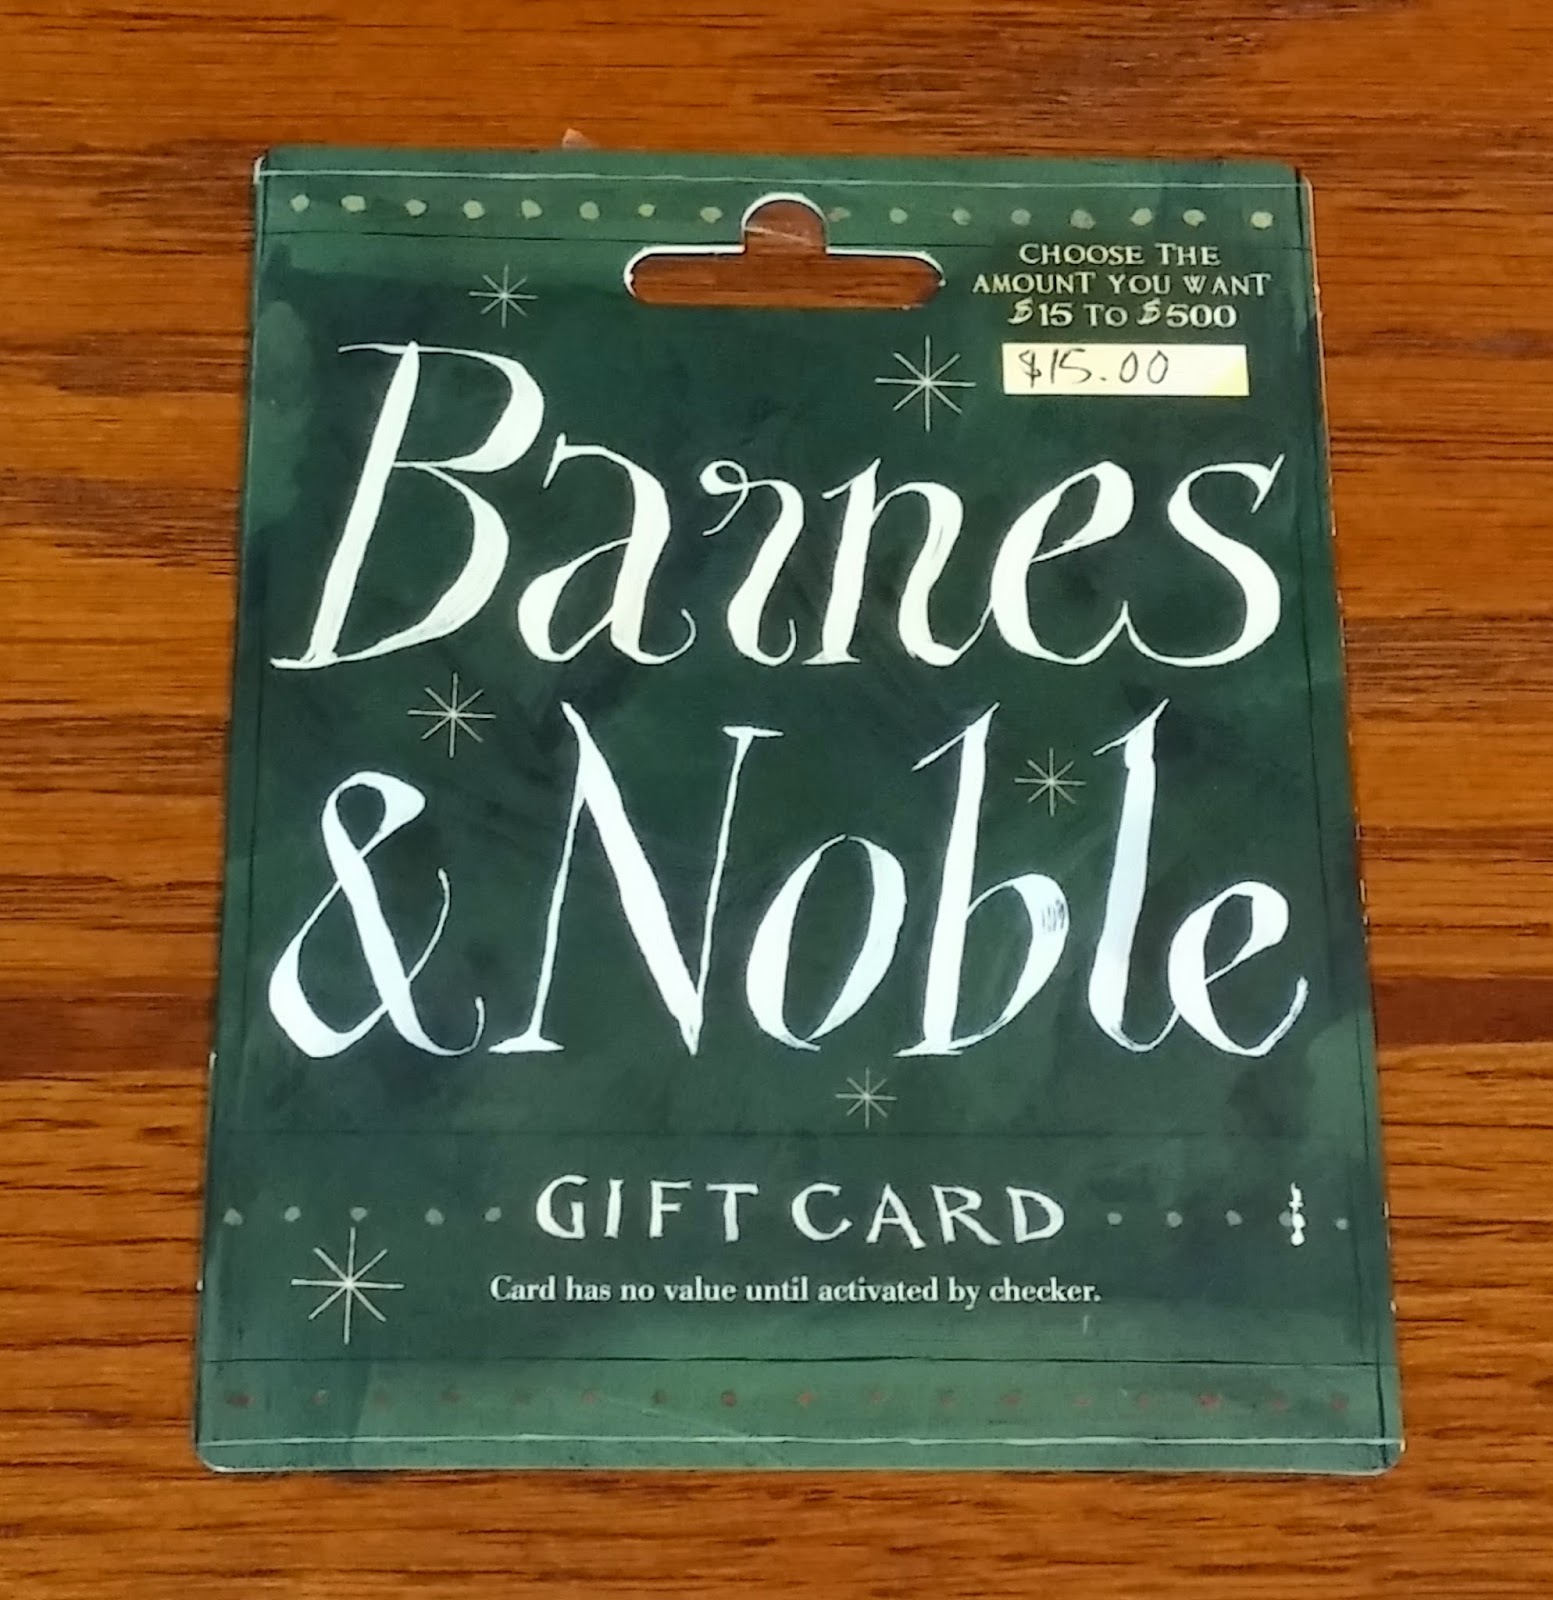 barnes noble gift card giveaway anything confessions frugal goes enter mind using